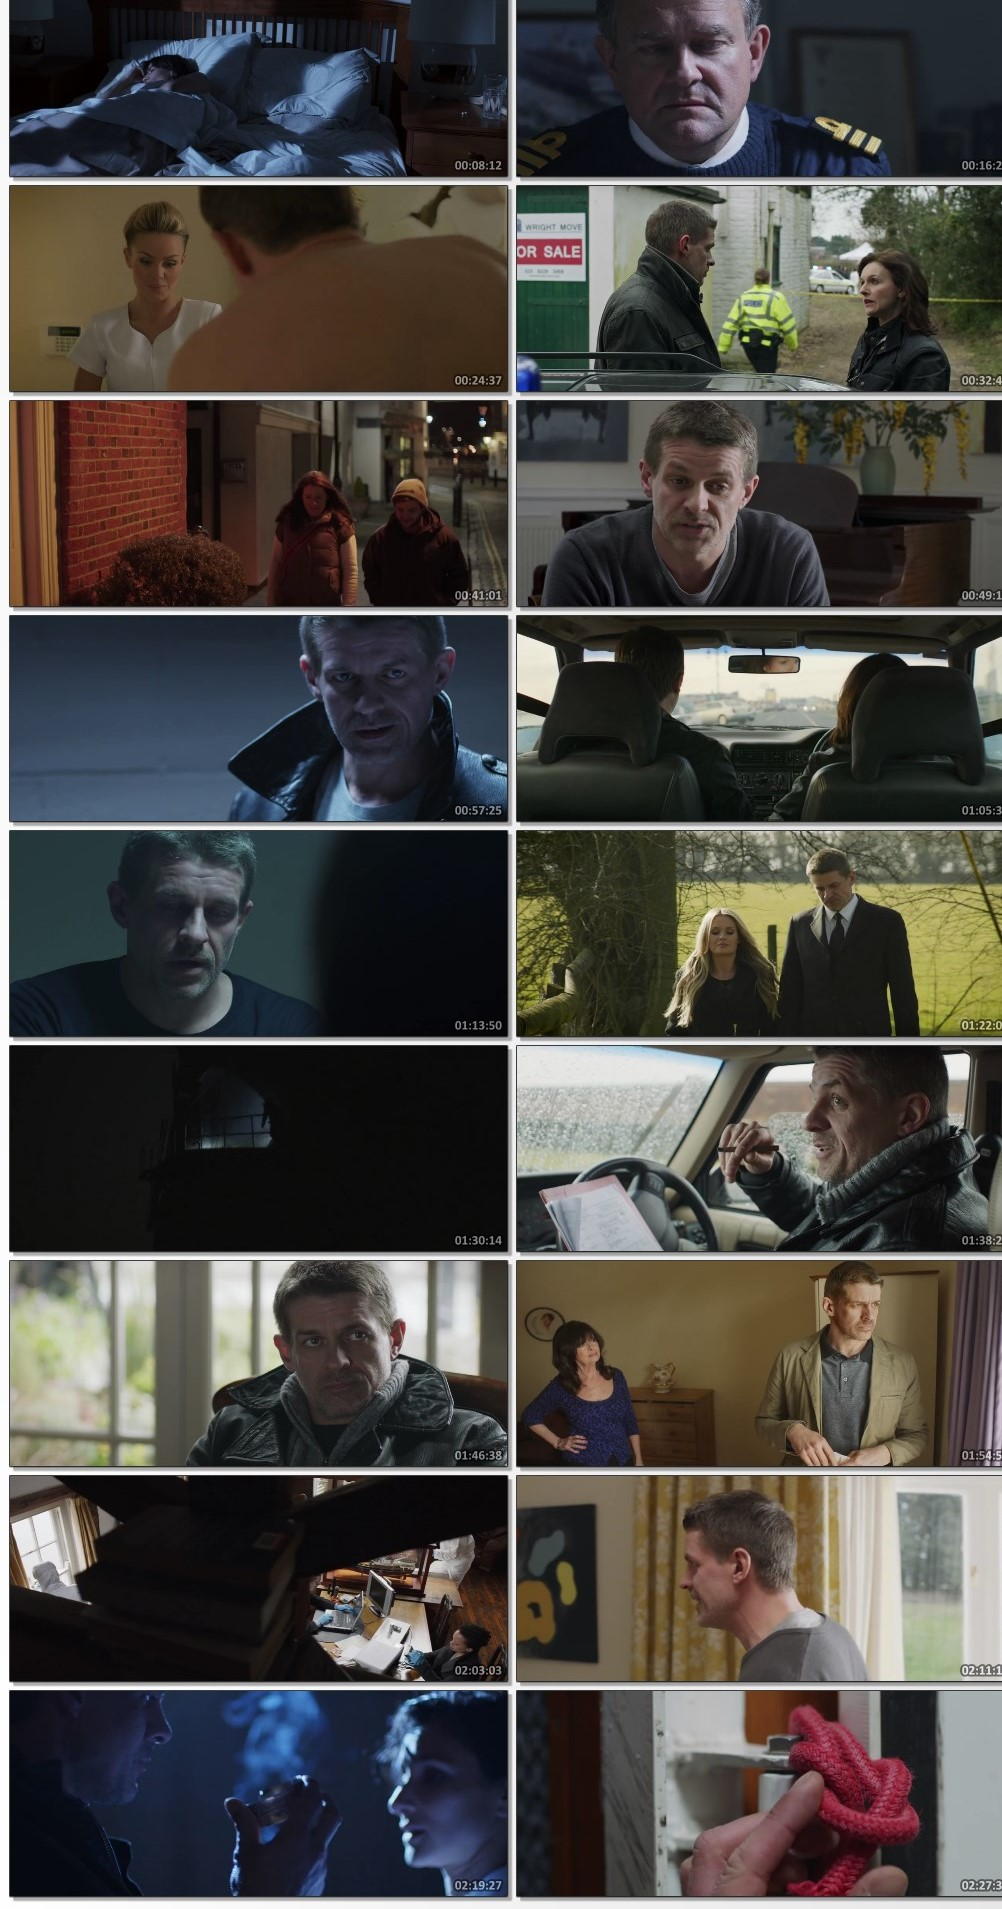 Silent-Hours-2021-English-720p-www-7-Star-HD-Wales-HDRip-900-MB-1-mkv-thumbs7496a44e9138aef2